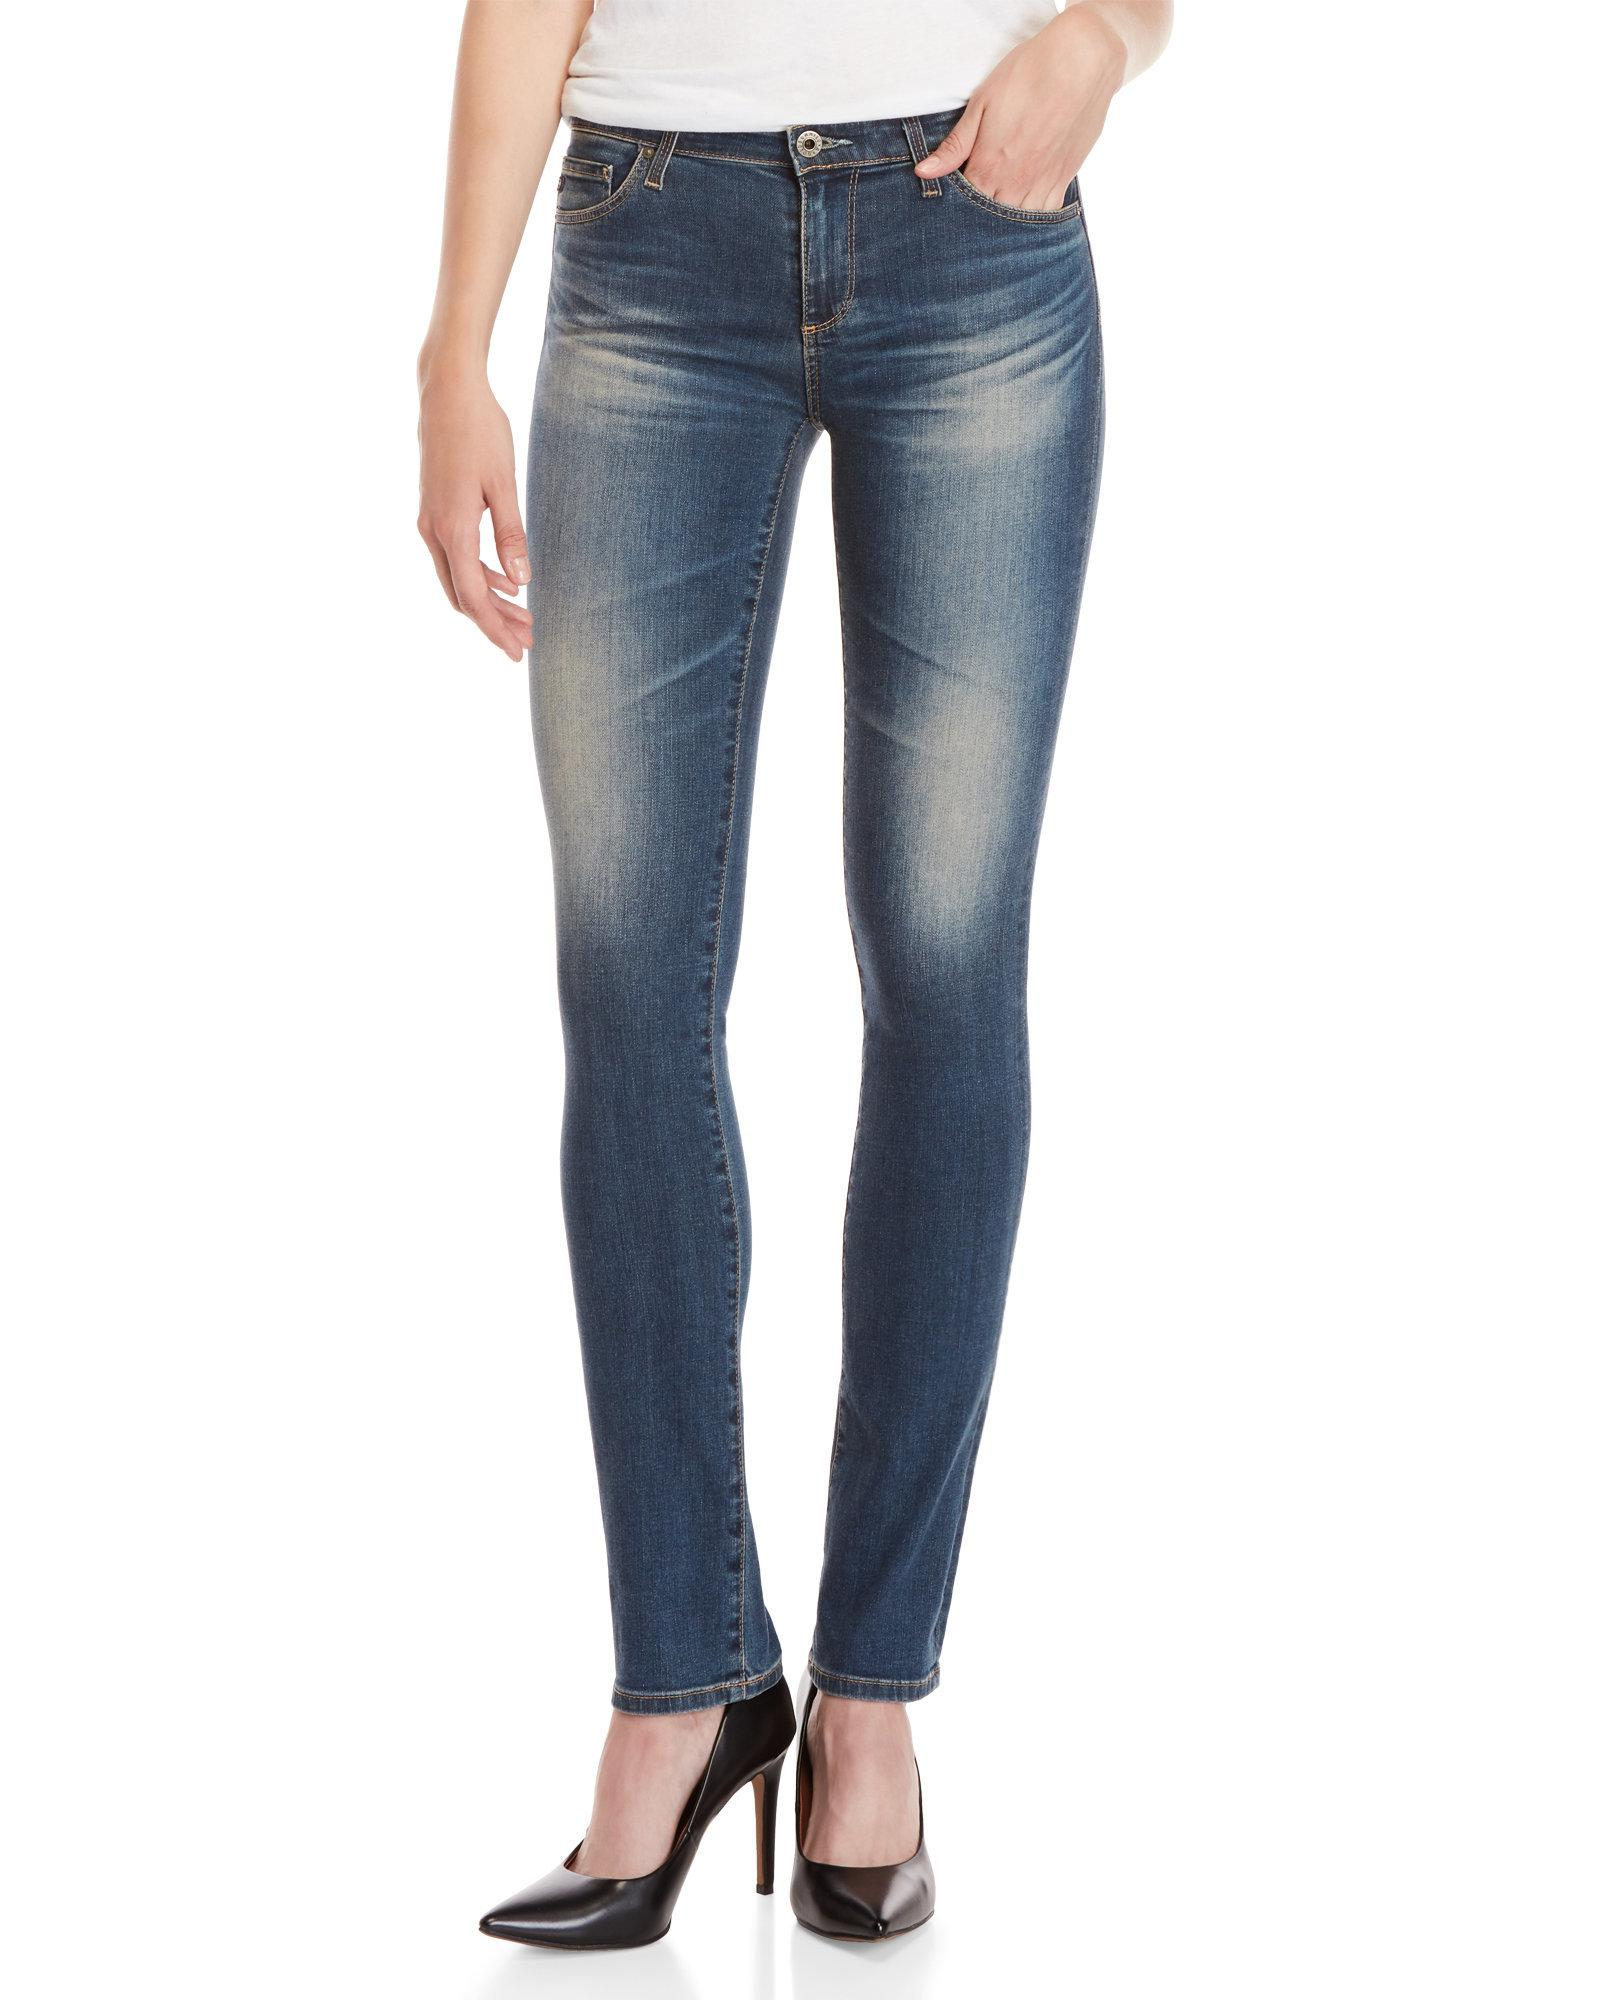 335be46ae24e Lyst - Ag Jeans The Harper Essential Straight Leg Jeans in Blue